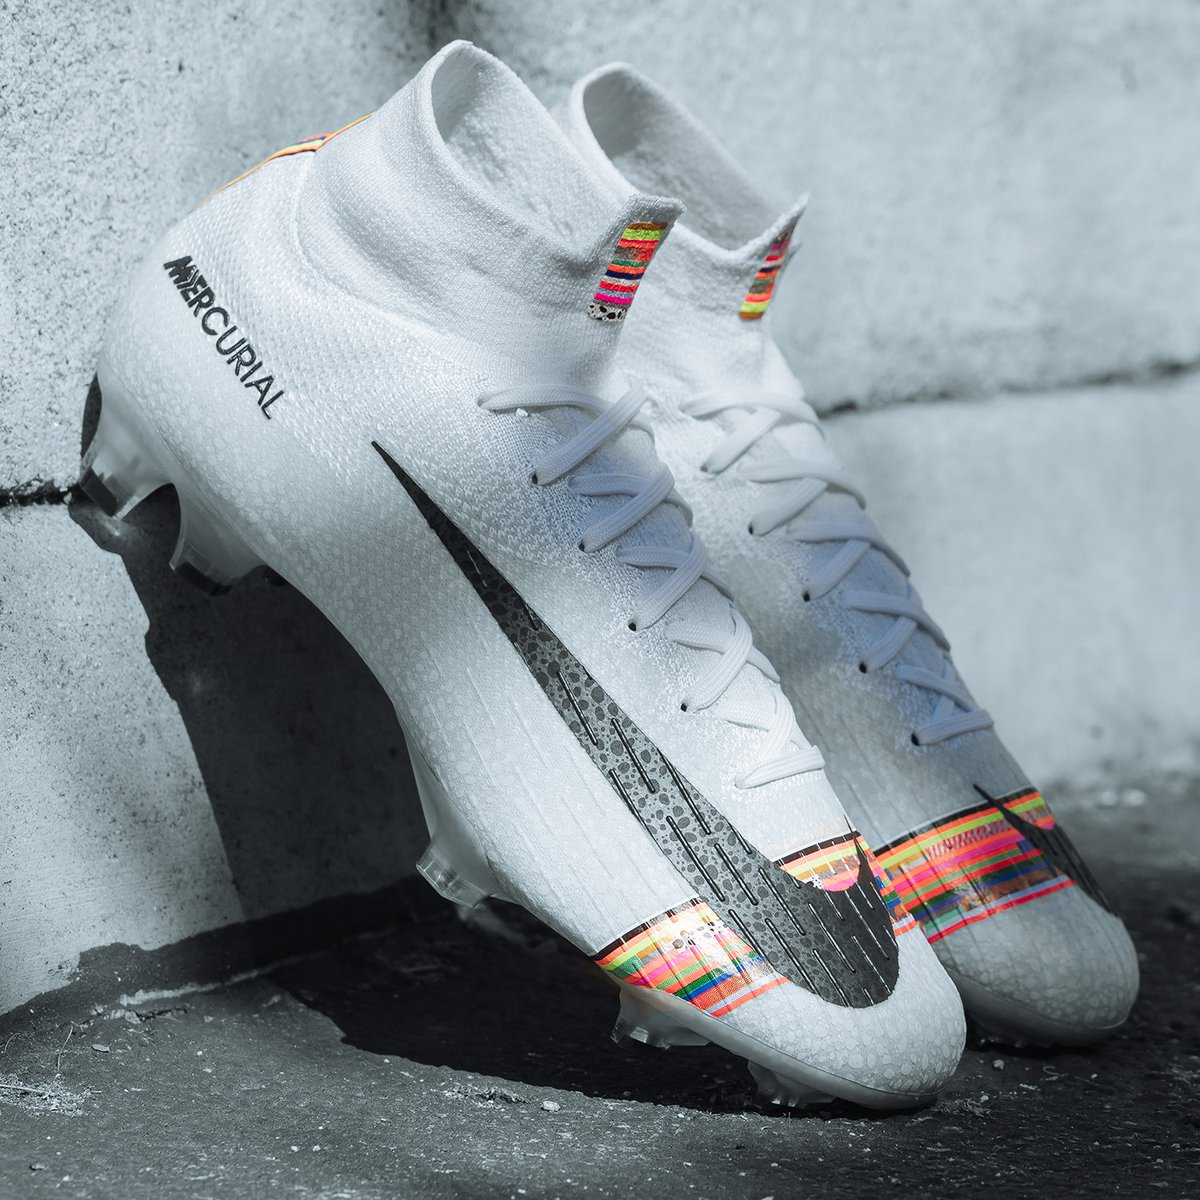 "6690dc58aee ... UP"" special edition cleats. Available in-stores   online Shop  https   www.nikys-sports.com cr7-superfly-360-elite-fg.html  …pic.twitter.com bwtW4uk89V"